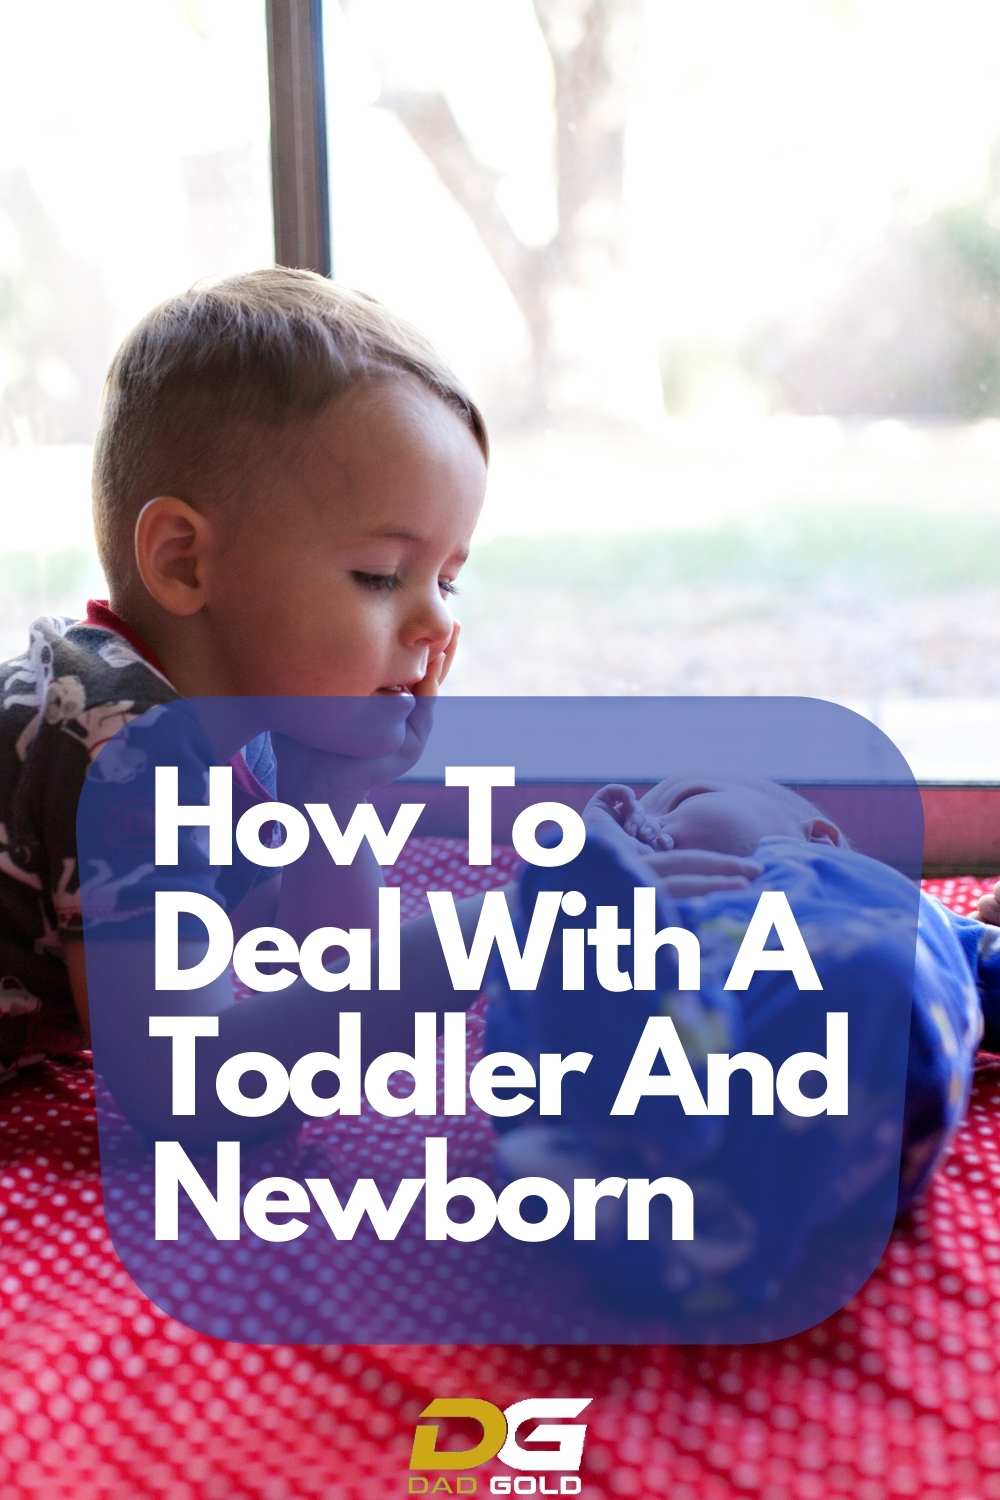 How To Deal With A Toddler And Newborn